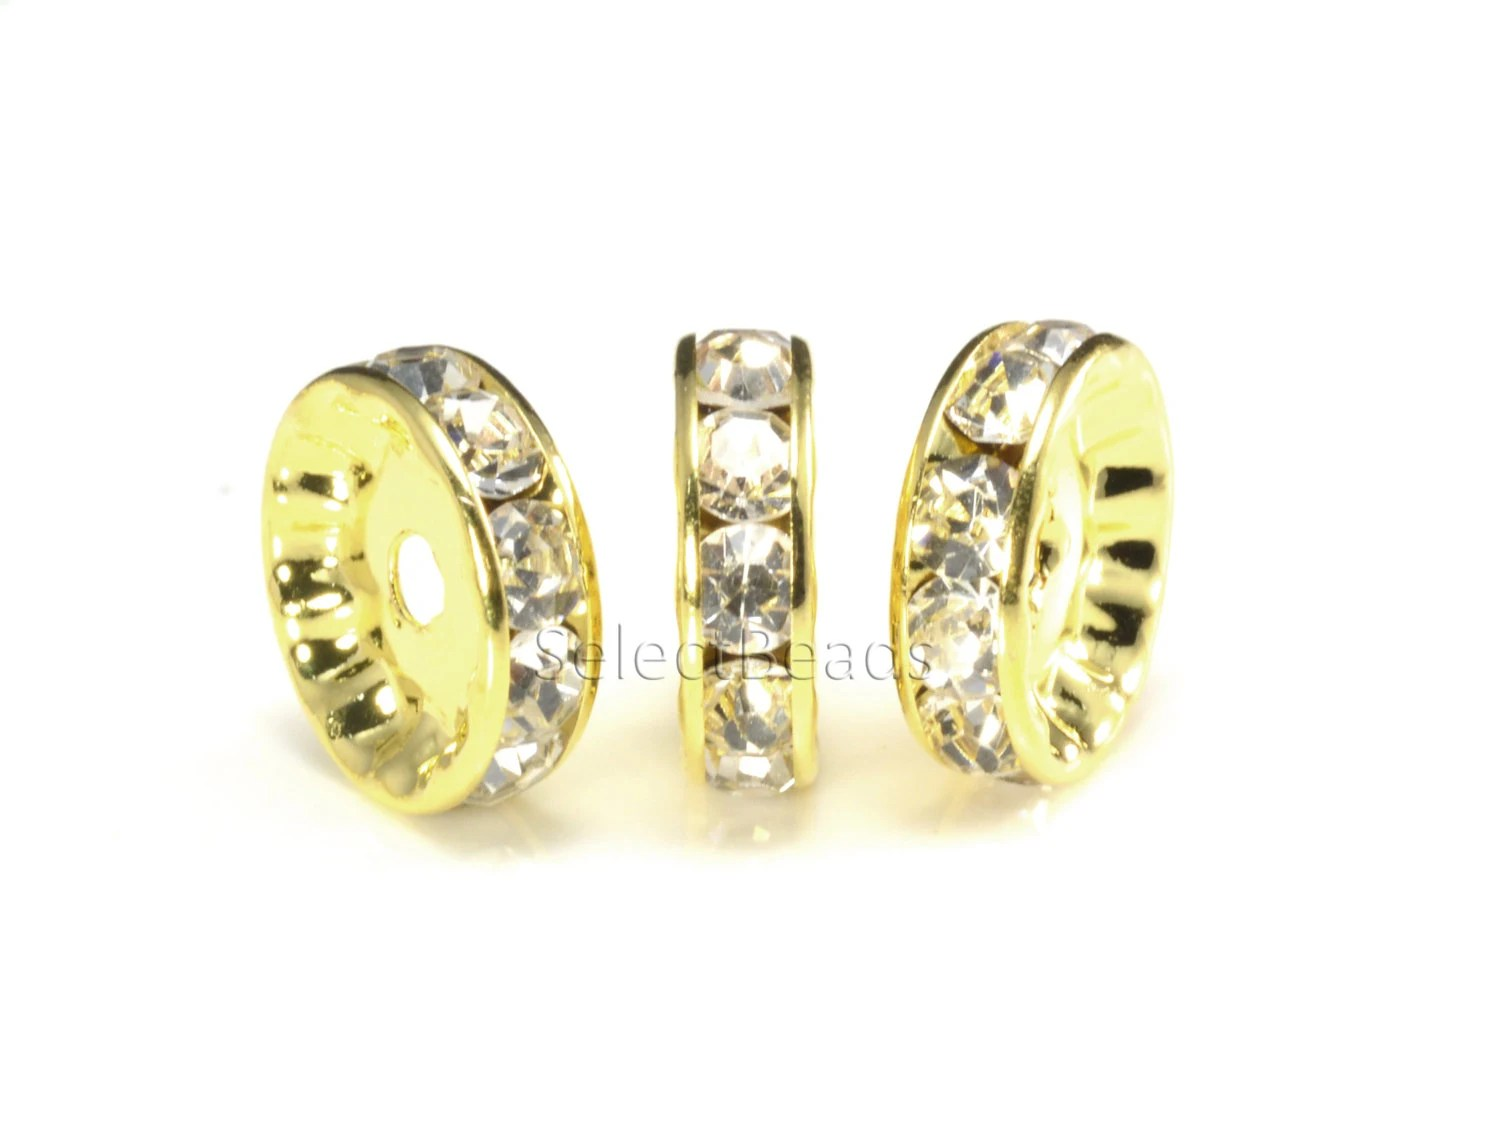 Rhinestone copper spacer bead yellow gold plated white for Craft and jewelry supplies